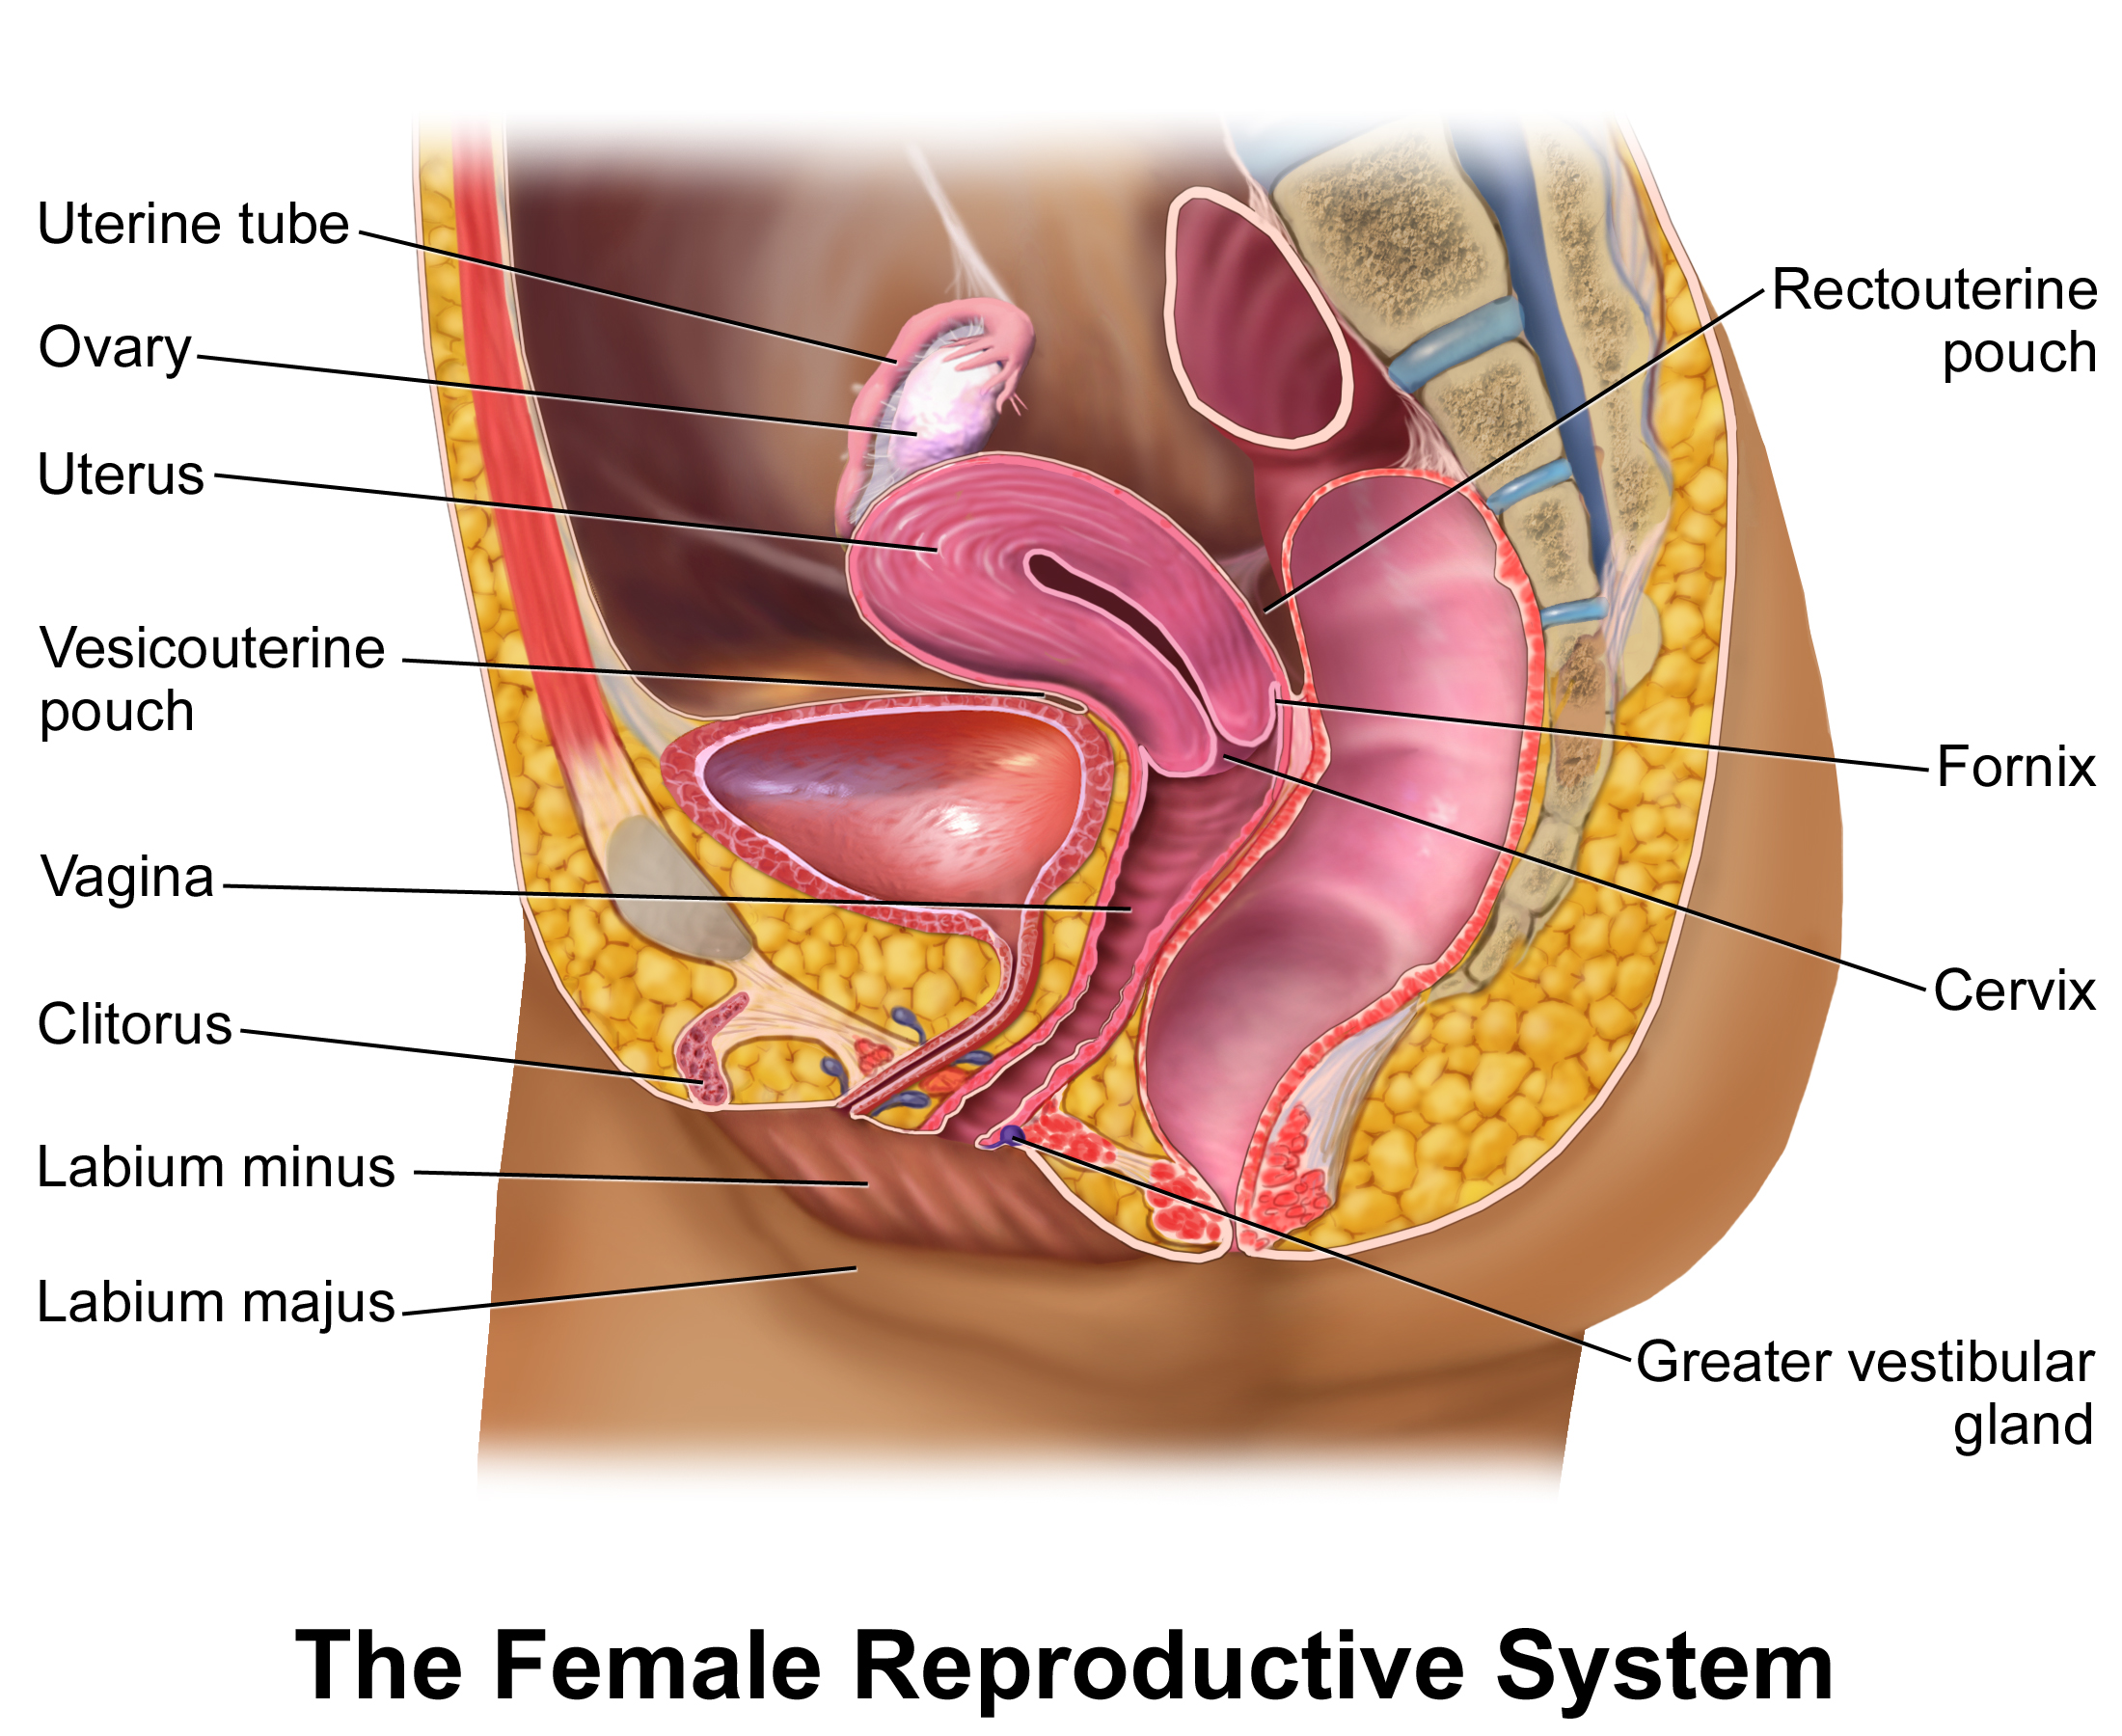 Biology 2 Topic 11: Human Reproductive Systems - Lessons - Tes Teach